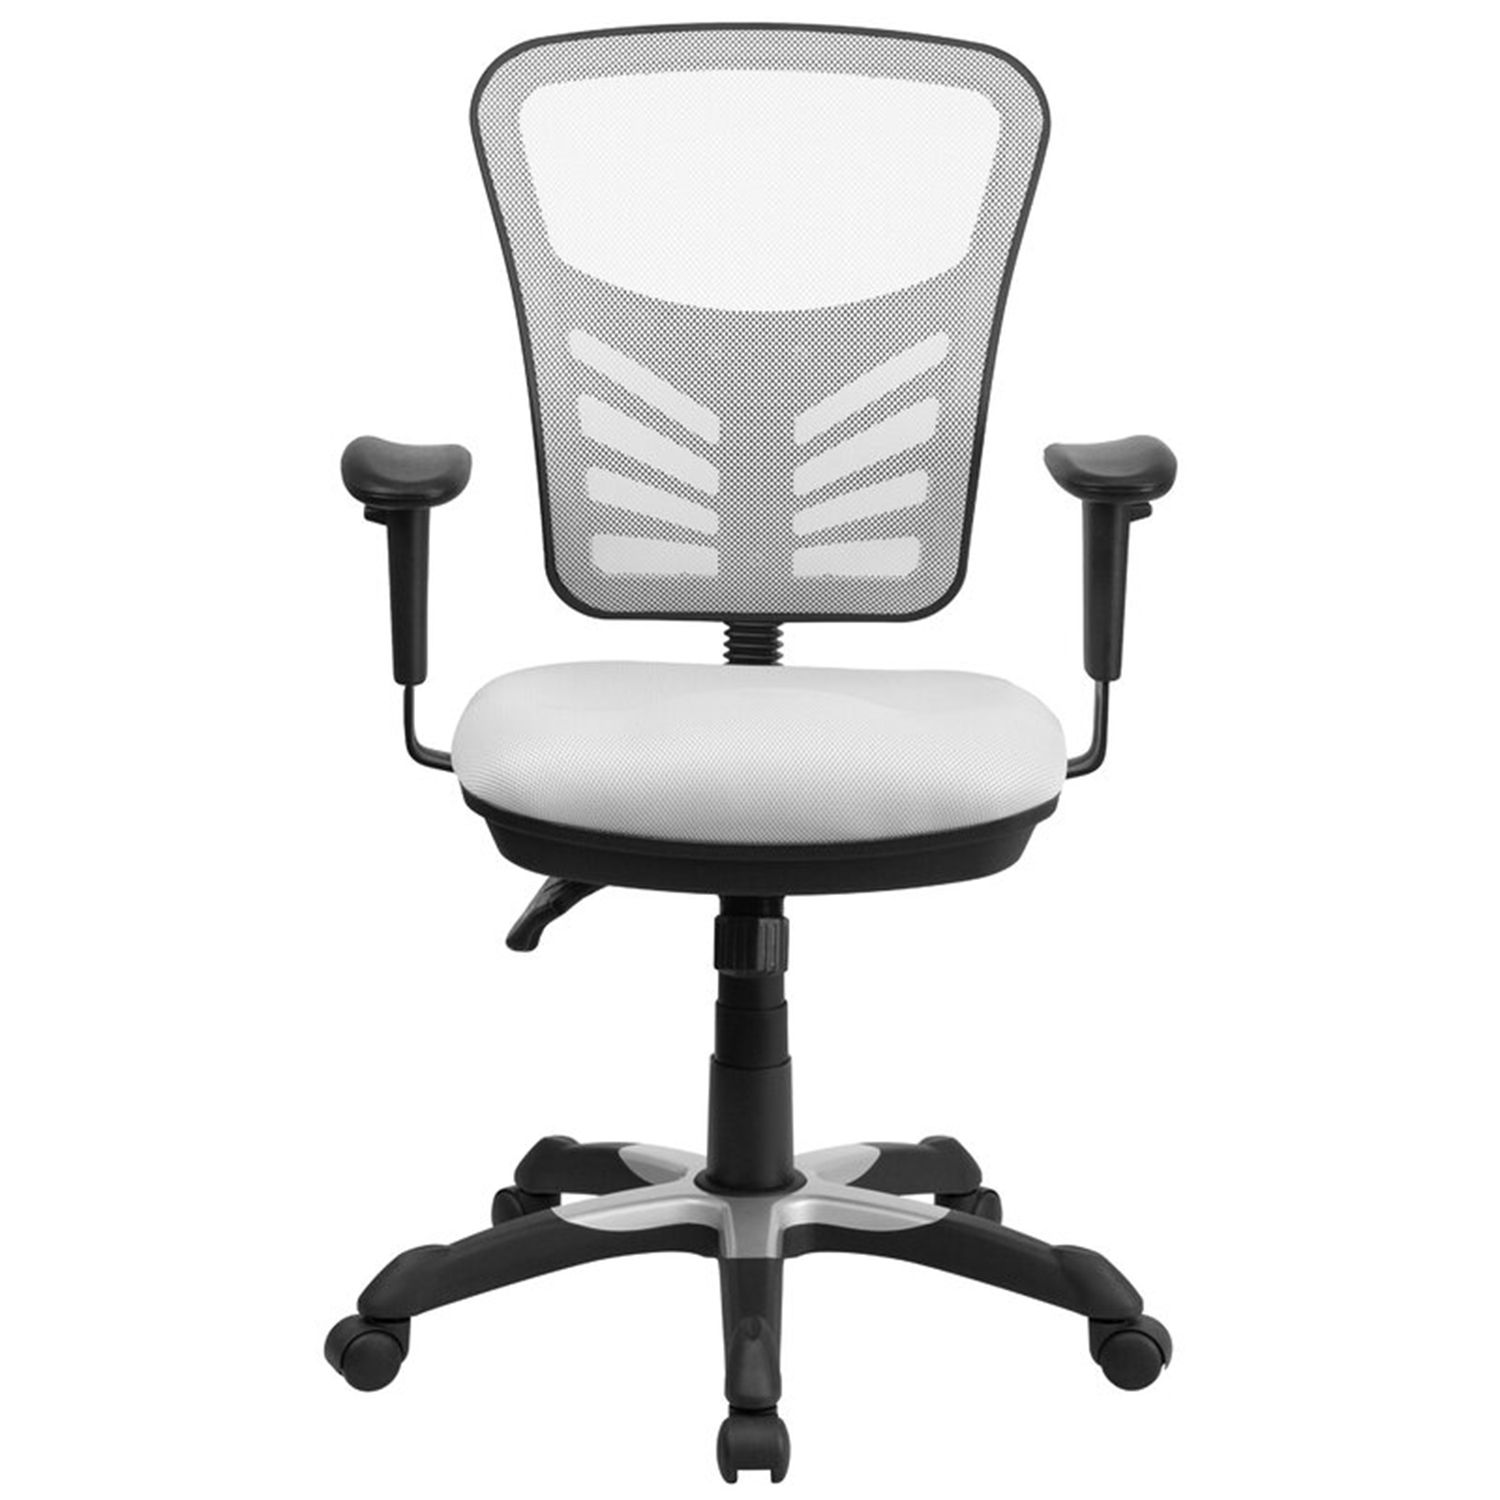 The 7 Most Comfortable Home Office Chairs According To Thousands Of Reviews In 2020 Mesh Task Chair Most Comfortable Office Chair Home Office Chairs